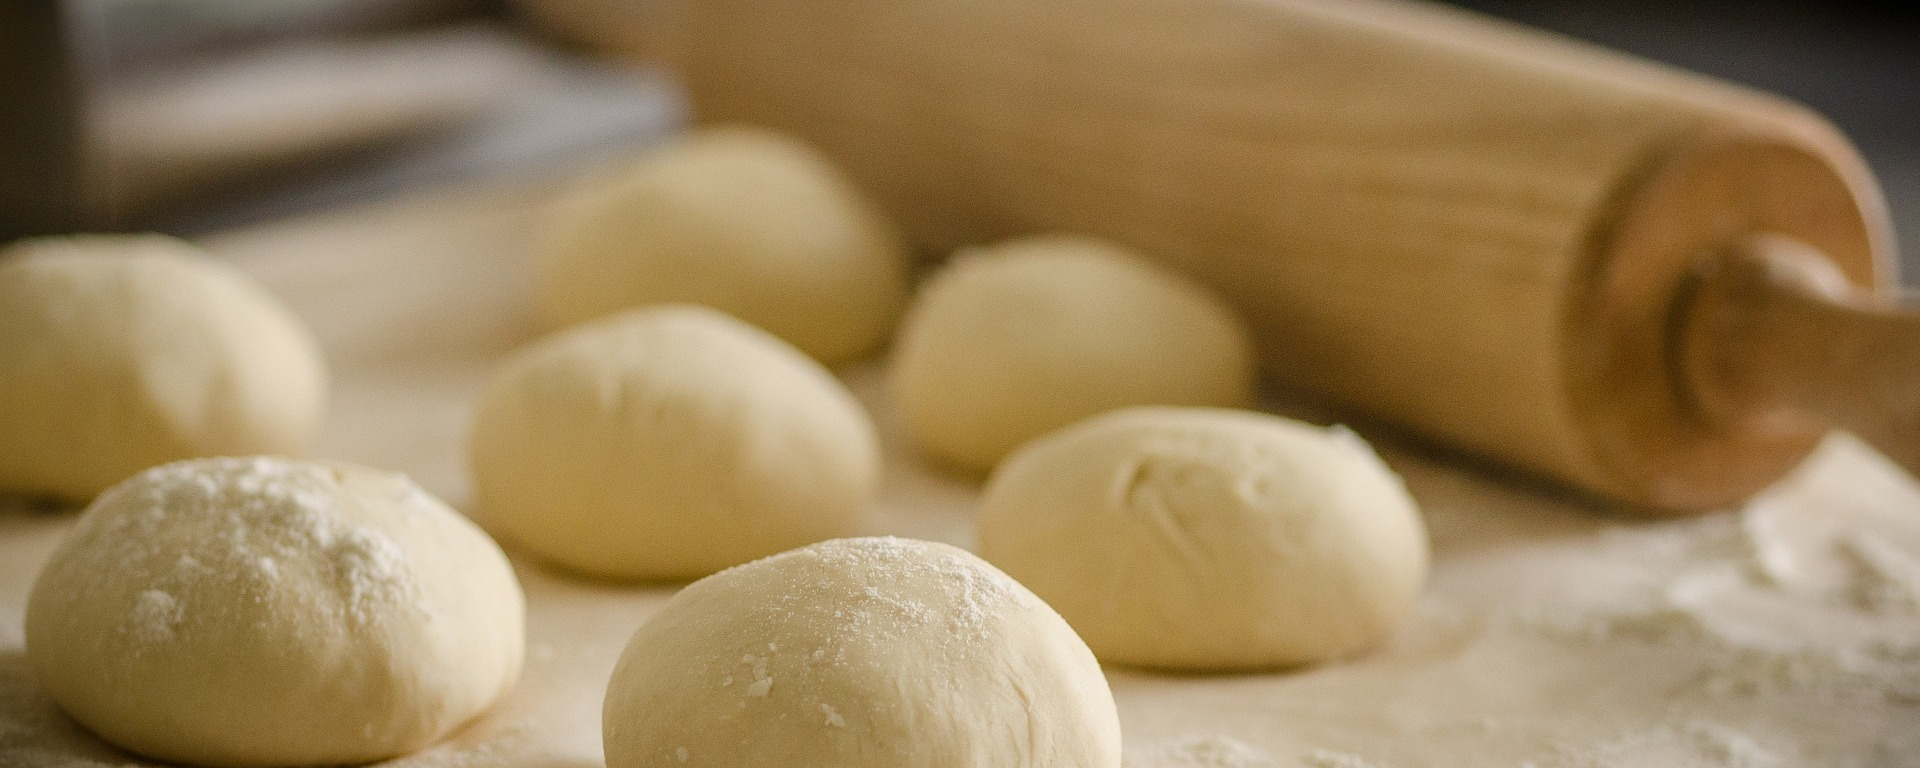 dough,cook,recipe,italian,flour,kitchen,preparation,white,ingredient,bakery,homemade,preparing,cuisine,pastry,bread,baking,pizza,traditional, DONCHARISMA,bread